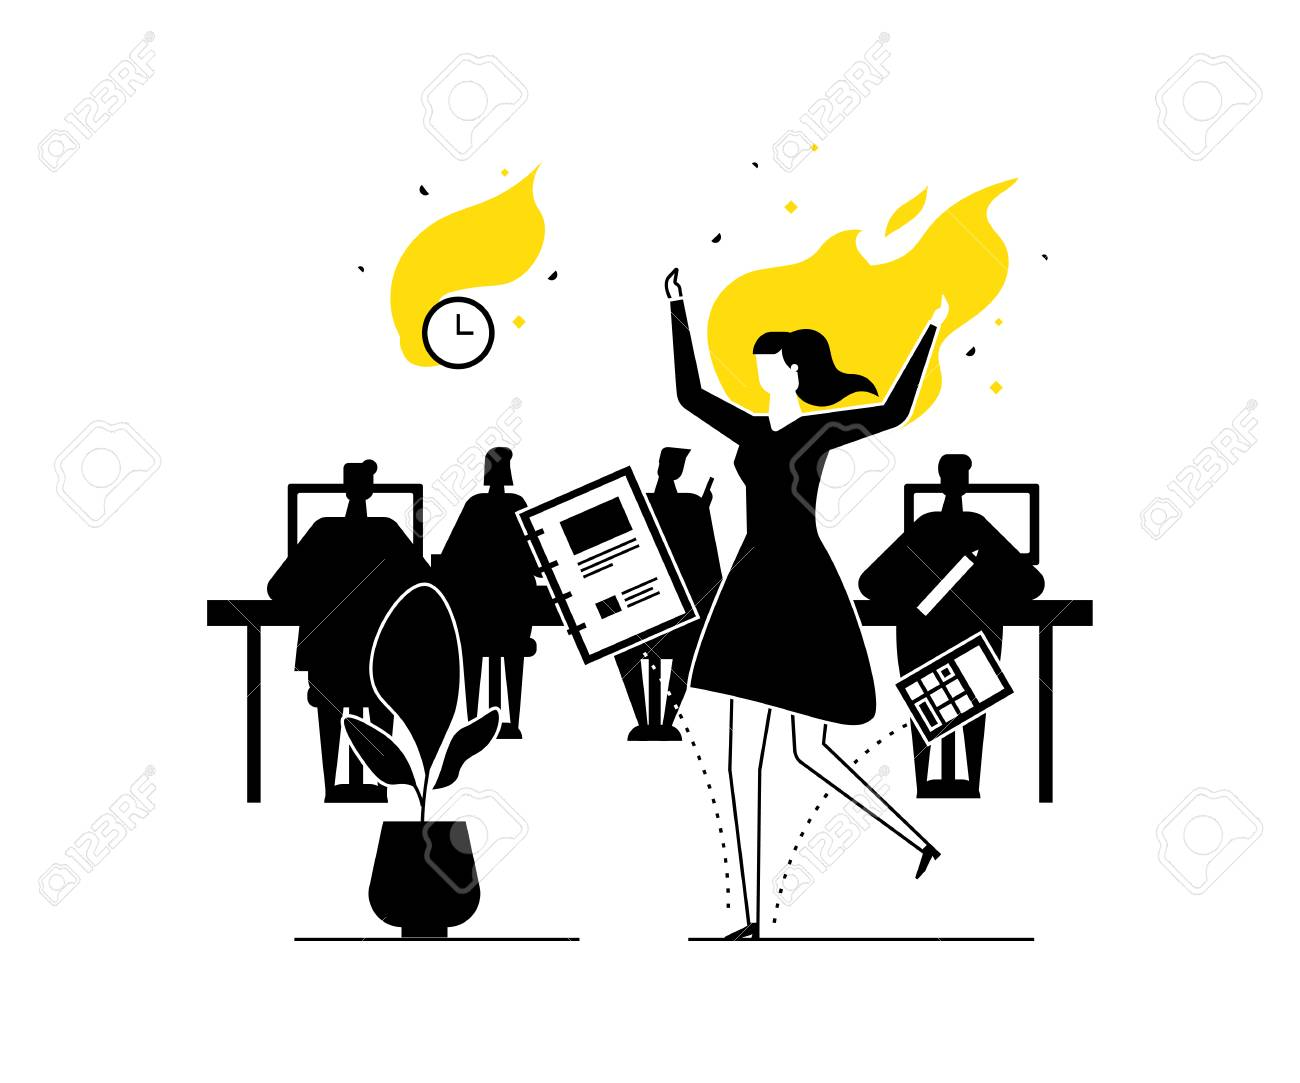 Job burnout - modern flat design style illustration. Black, white and yellow unusual composition with a female office worker on fire, having a deadline. Stress at work, time management concept - 128175751